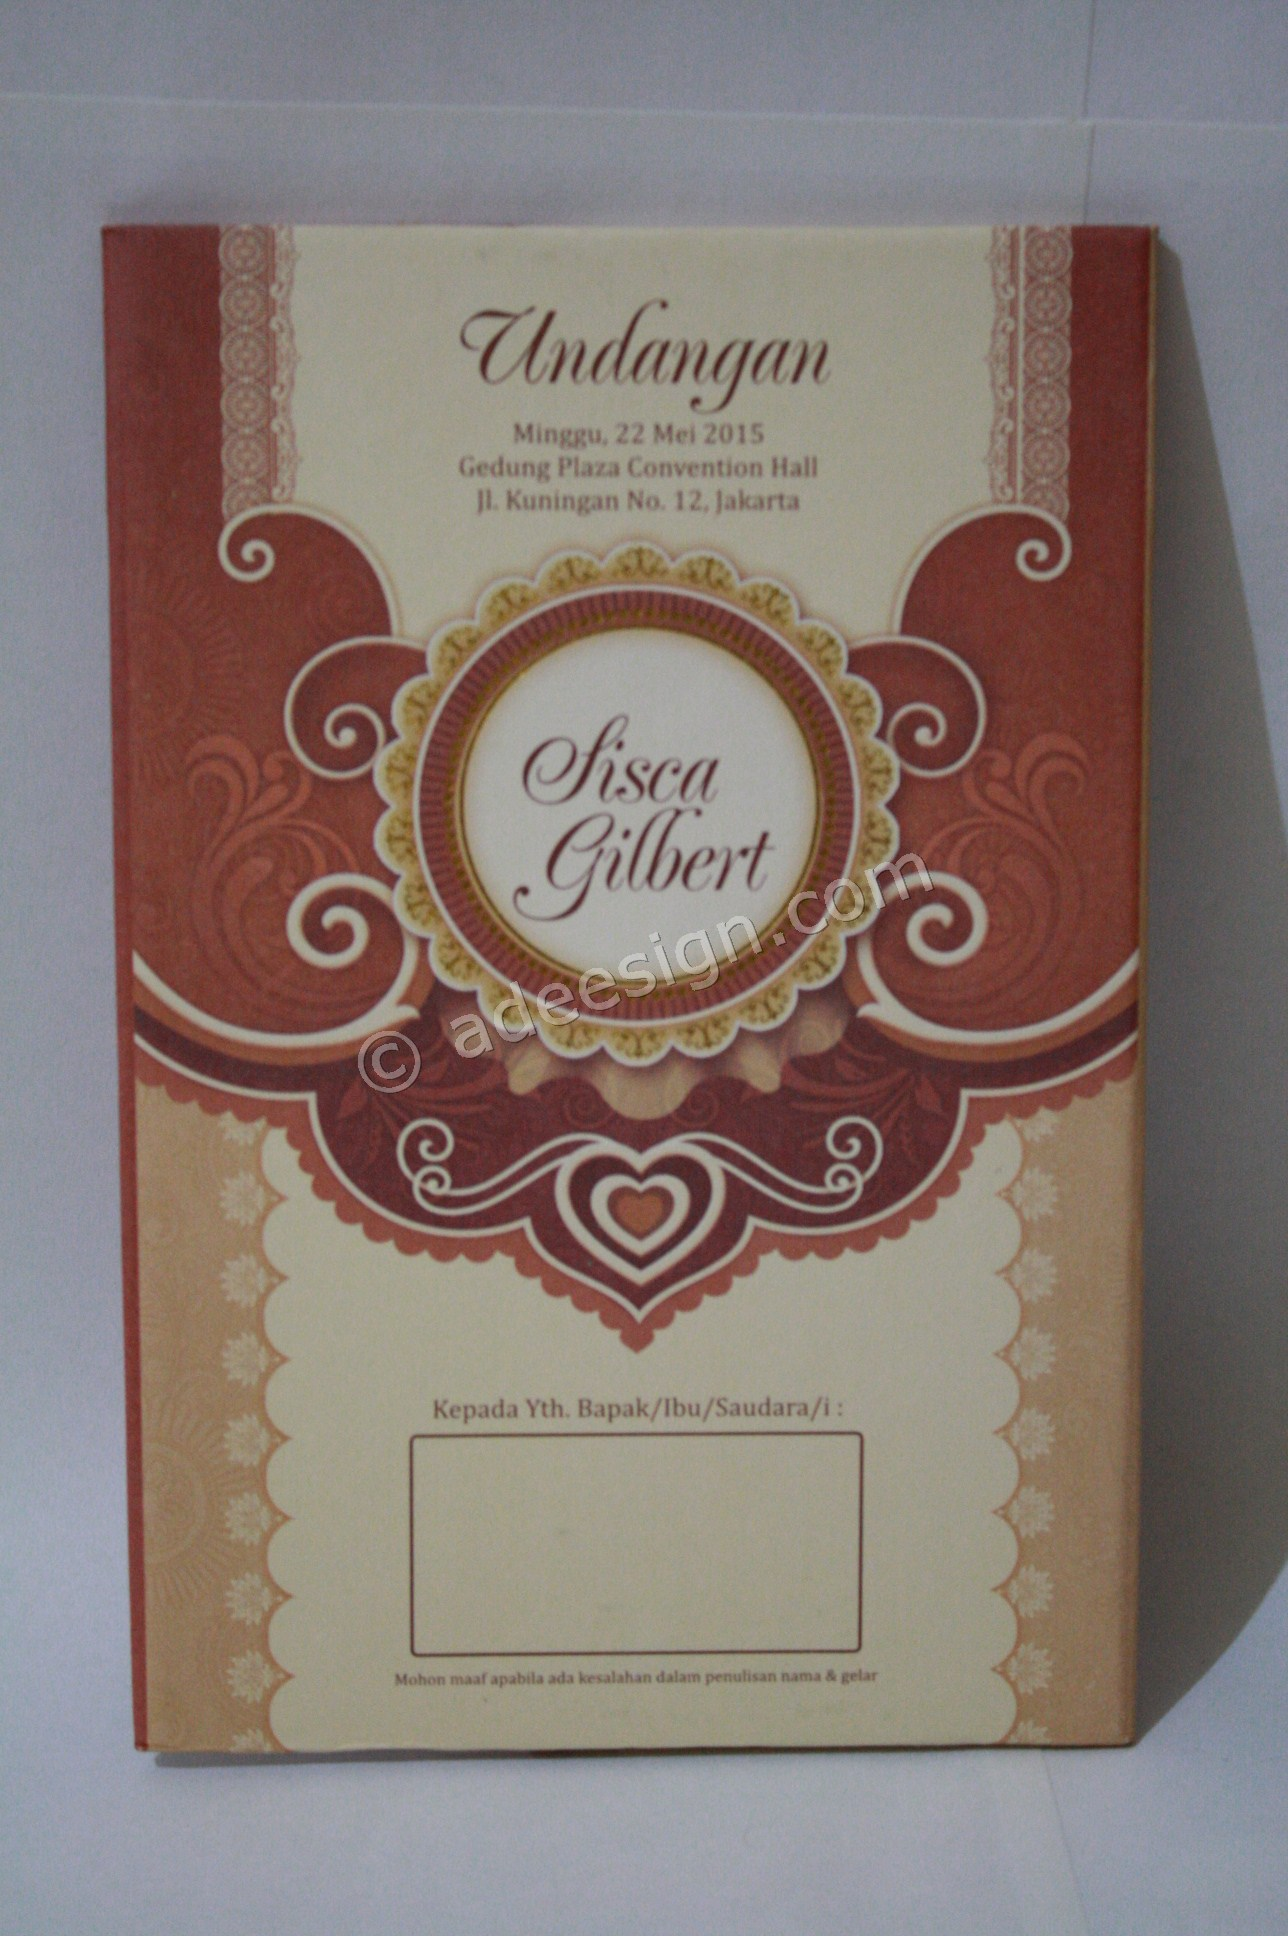 Undangan Pernikahan Hard Cover Sisca dan Gilbert 1 - Membuat Wedding Invitations Simple dan Elegan di Tambak Sarioso